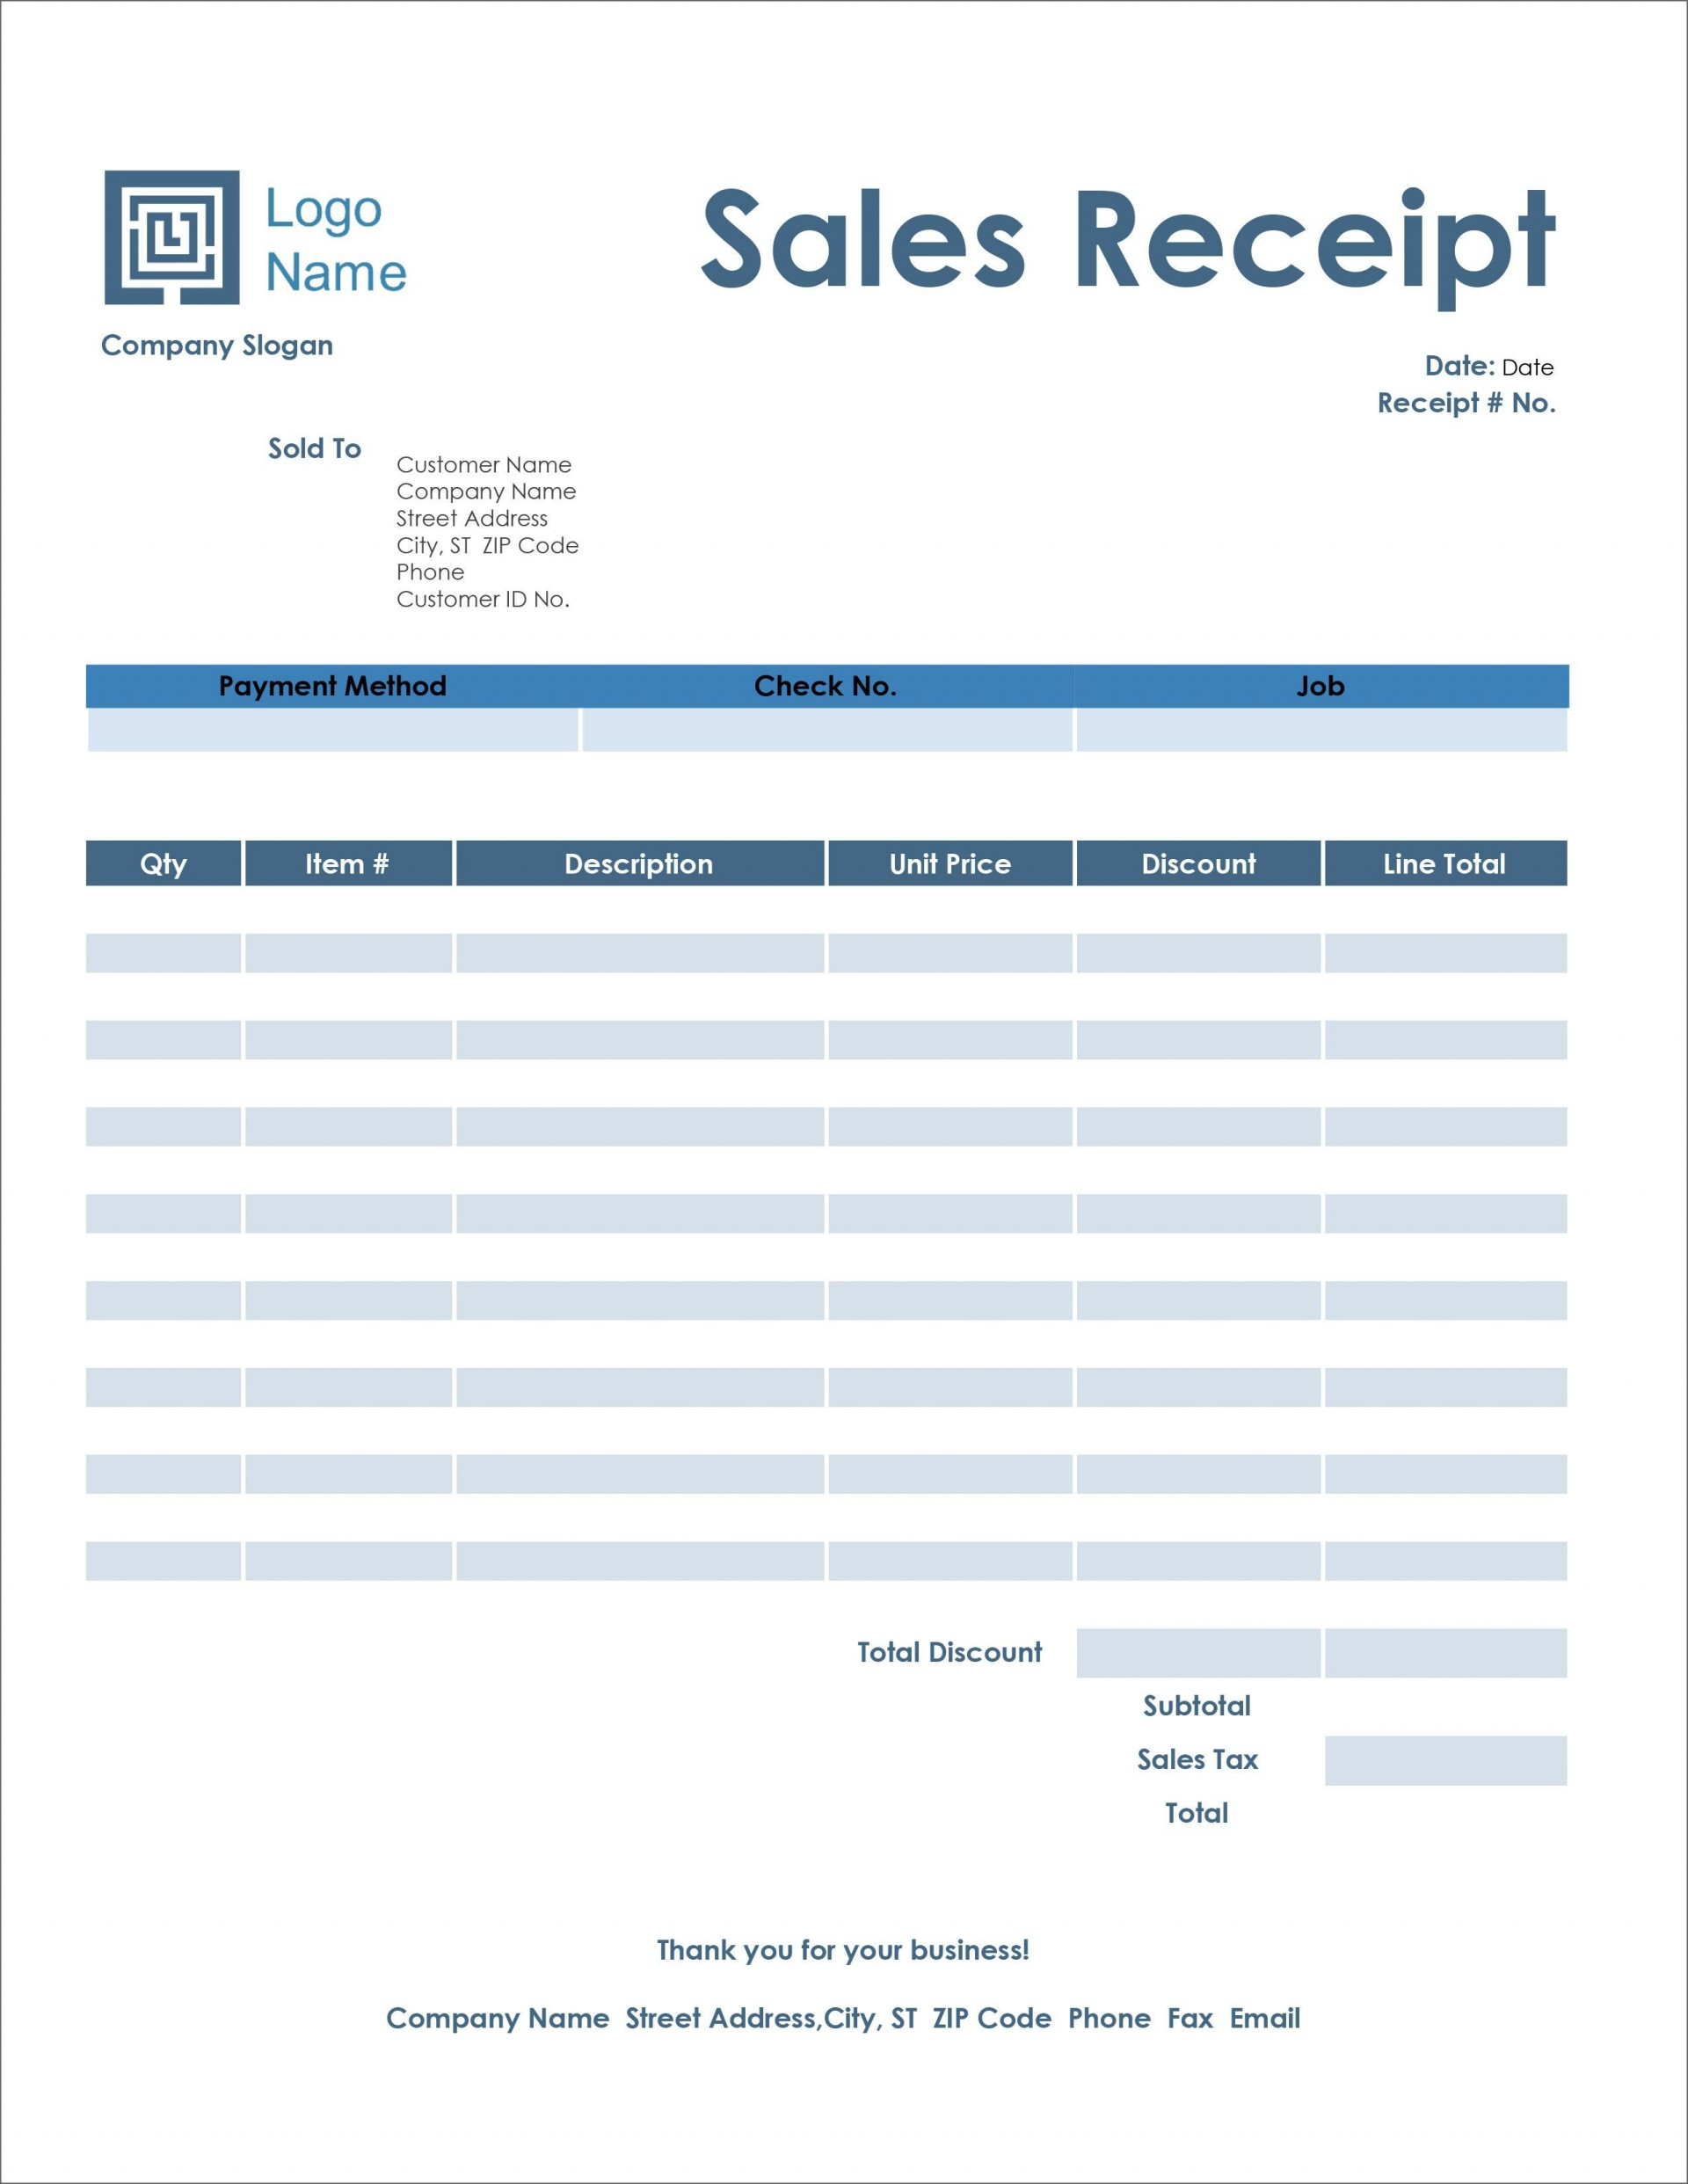 004 Unusual Rent Receipt Template Google Doc Sample  Docs Invoice Rental1920